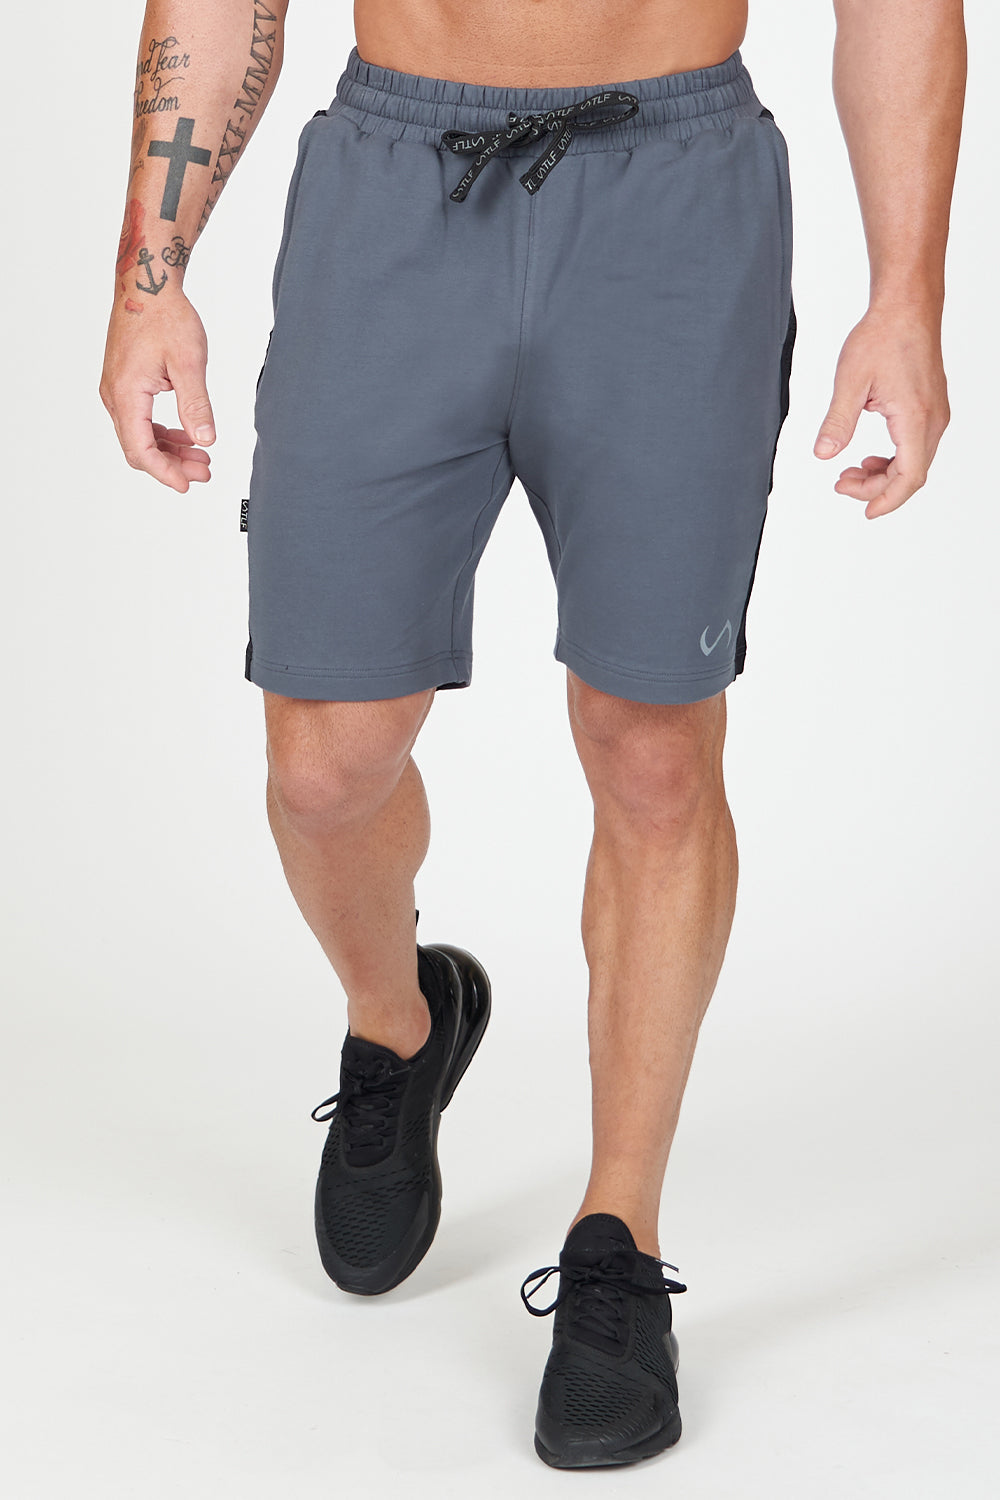 TLF Air-Flex French Terry Shorts - TLF Apparel | Take Life Further